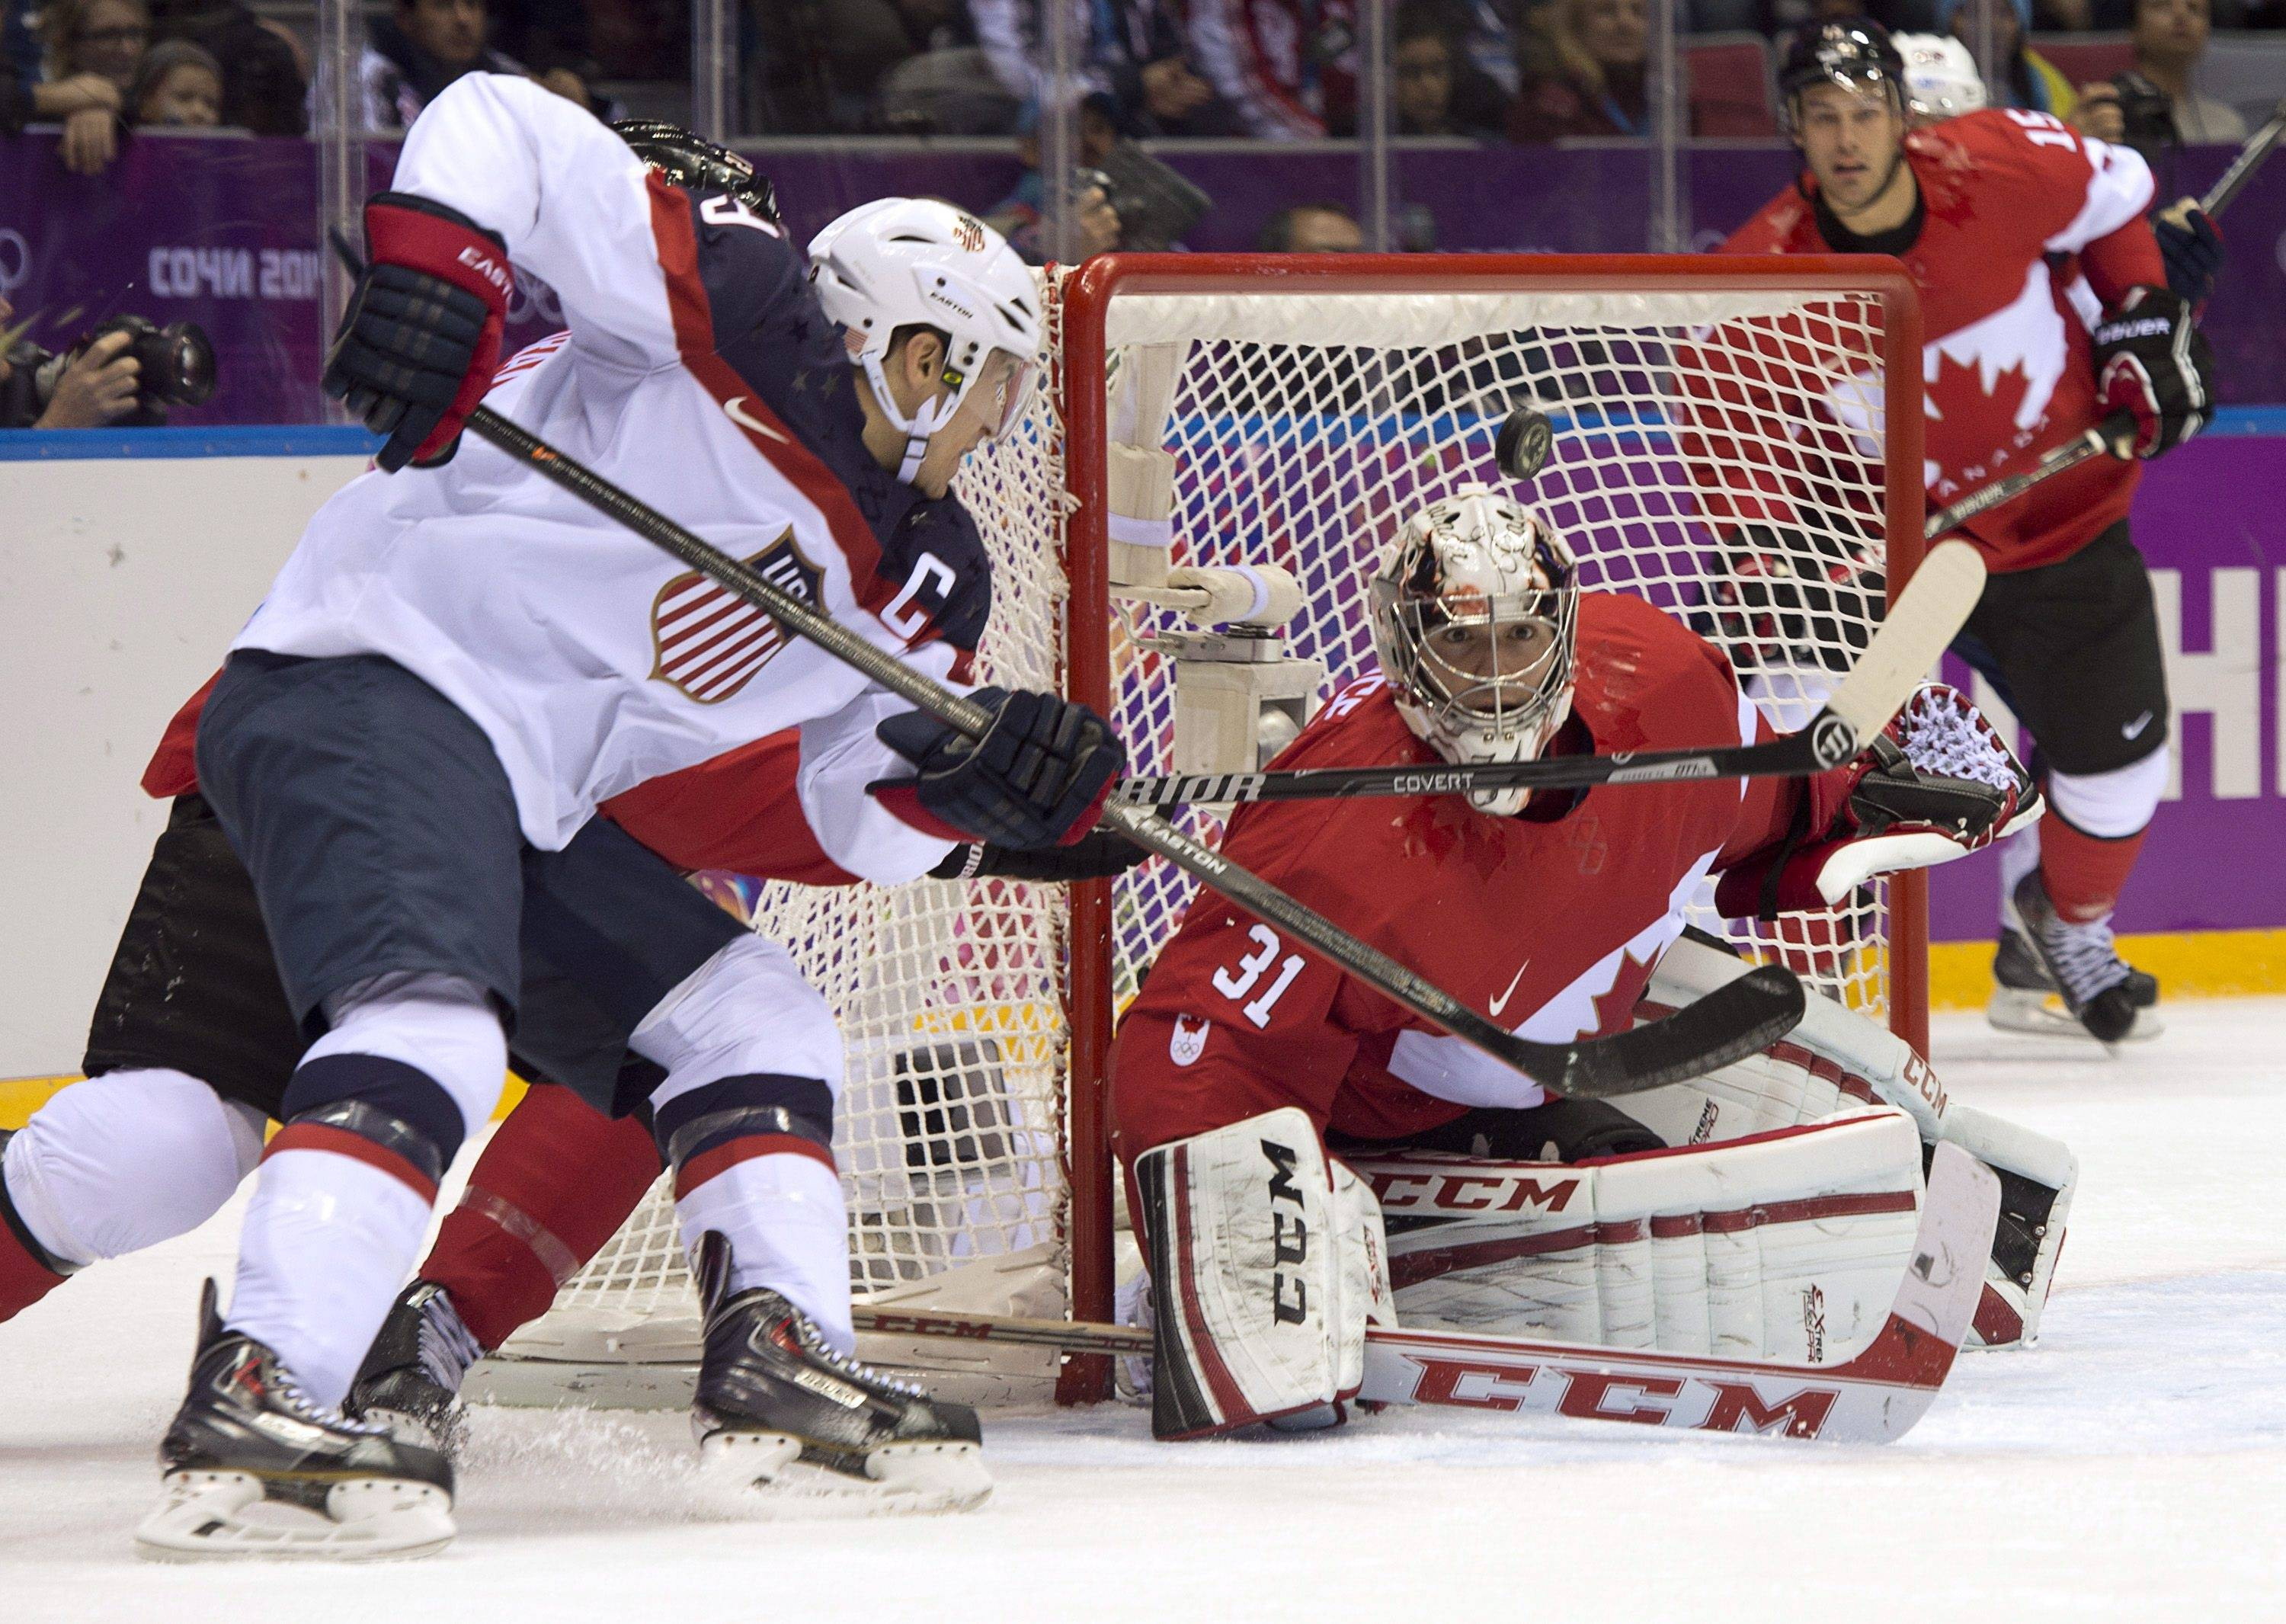 Goalie Carey Price of Canada keeps his eye on the puck as Zach Parise of the United States shoots.